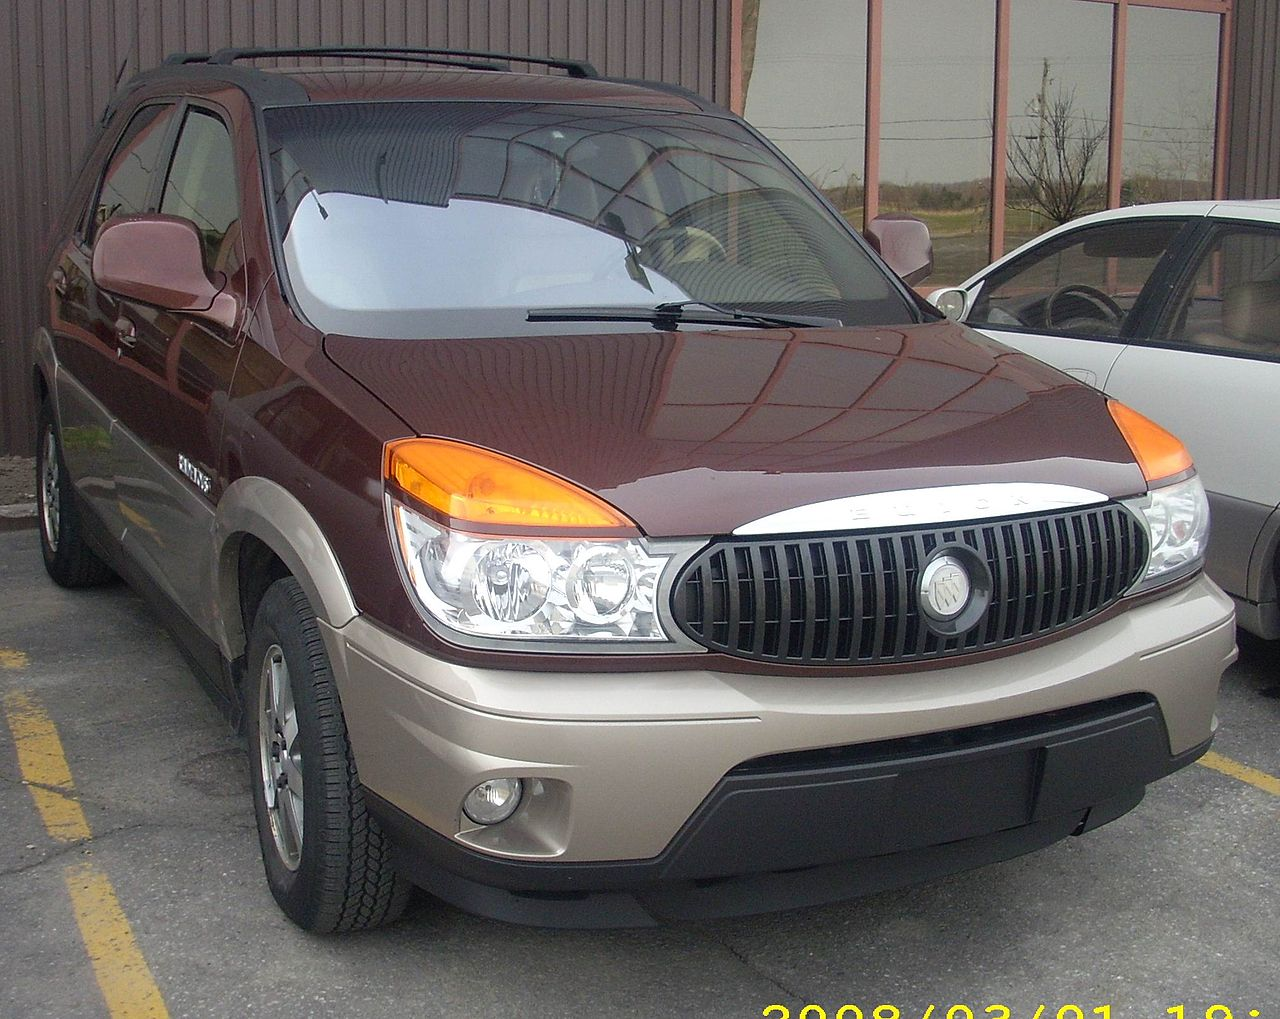 file 2002 03 buick rendezvous jpg wikimedia commons. Black Bedroom Furniture Sets. Home Design Ideas